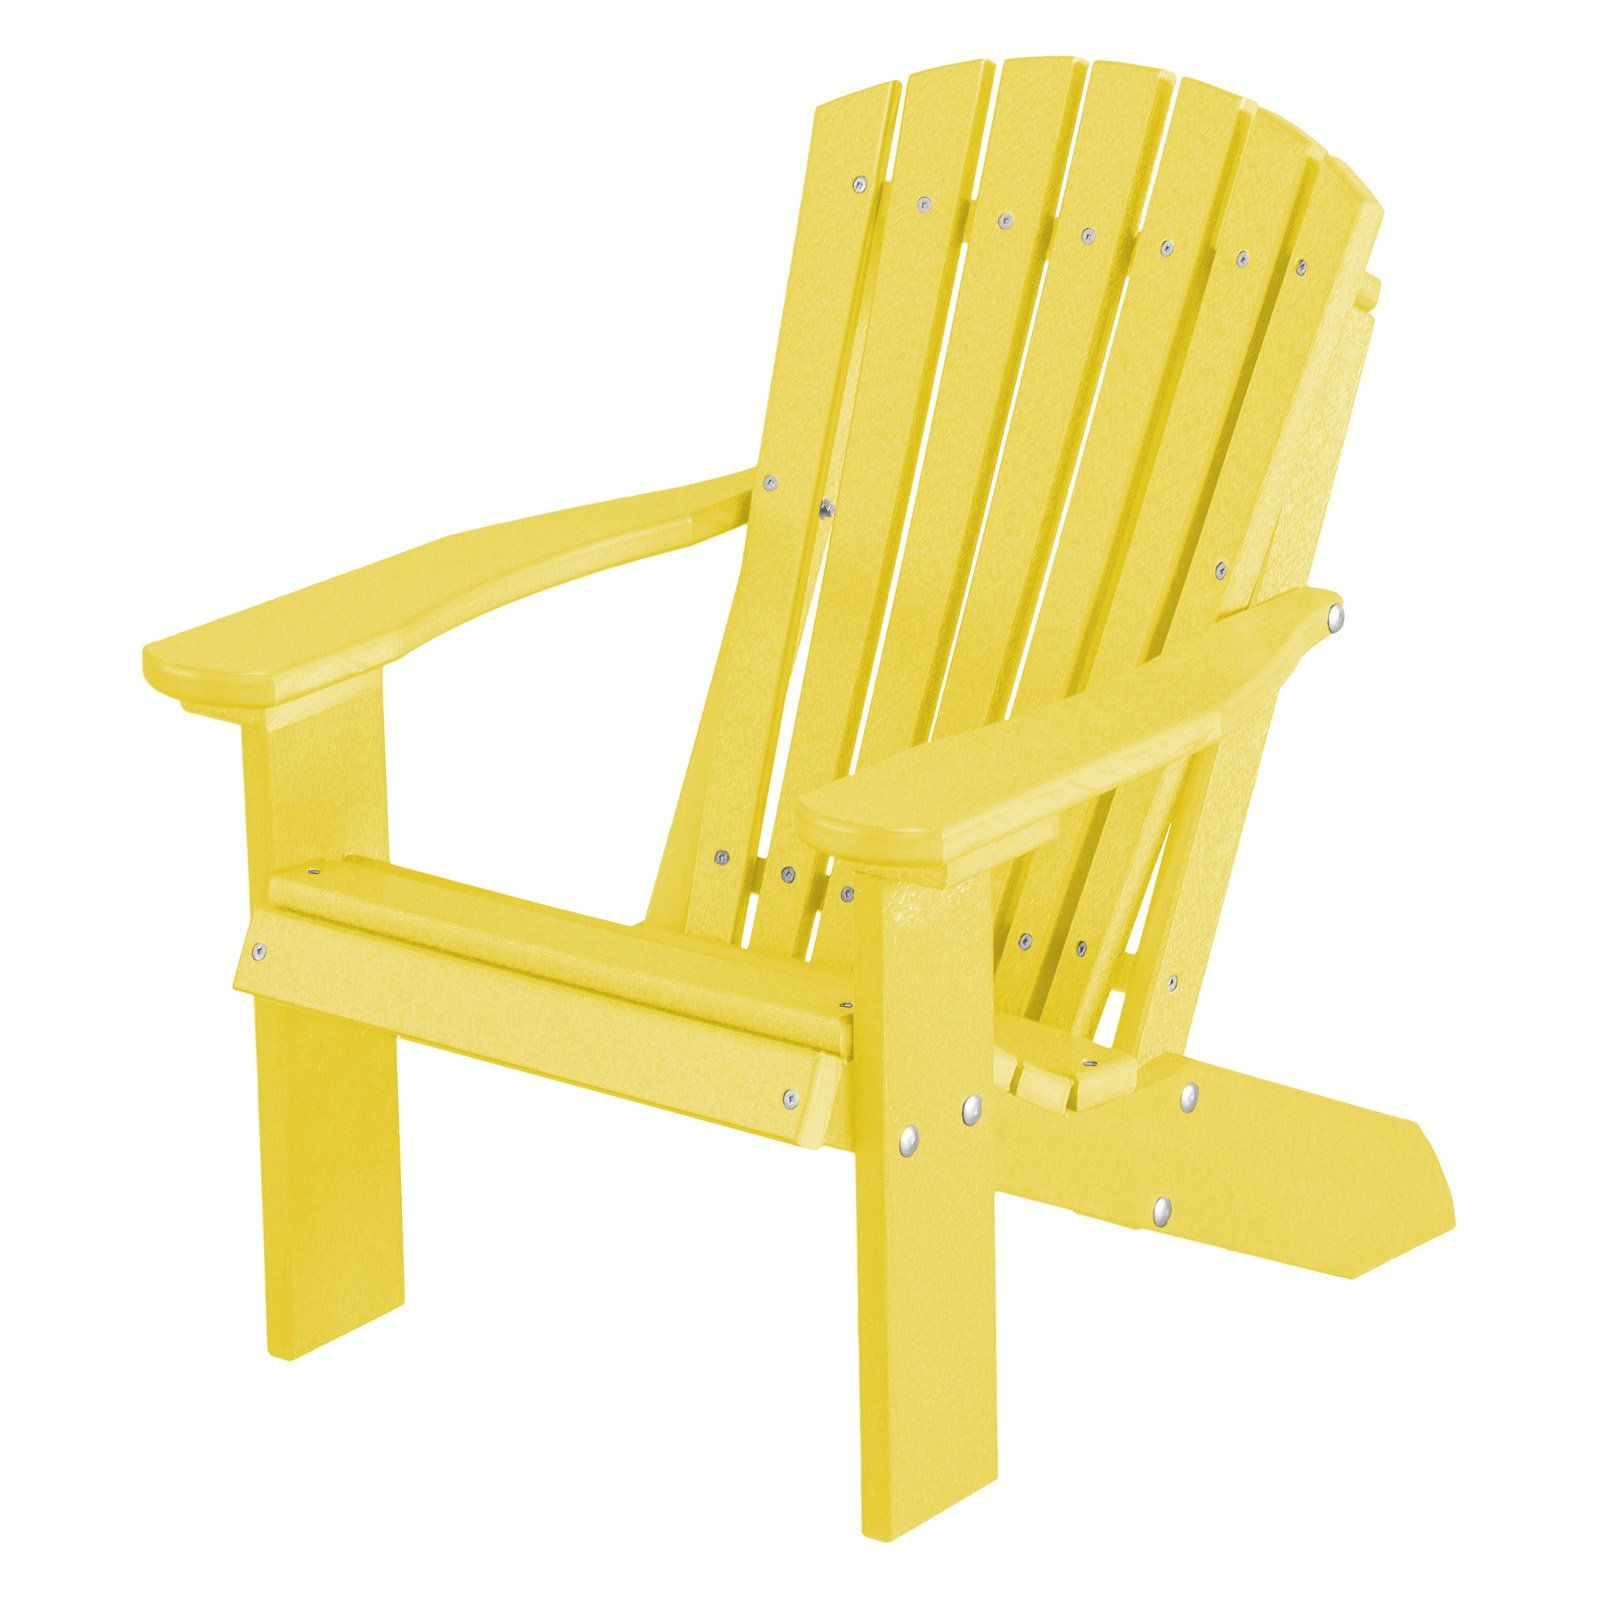 Miraculous Outdoor Wildridge Heritage Childrens Adirondack Chair In Andrewgaddart Wooden Chair Designs For Living Room Andrewgaddartcom